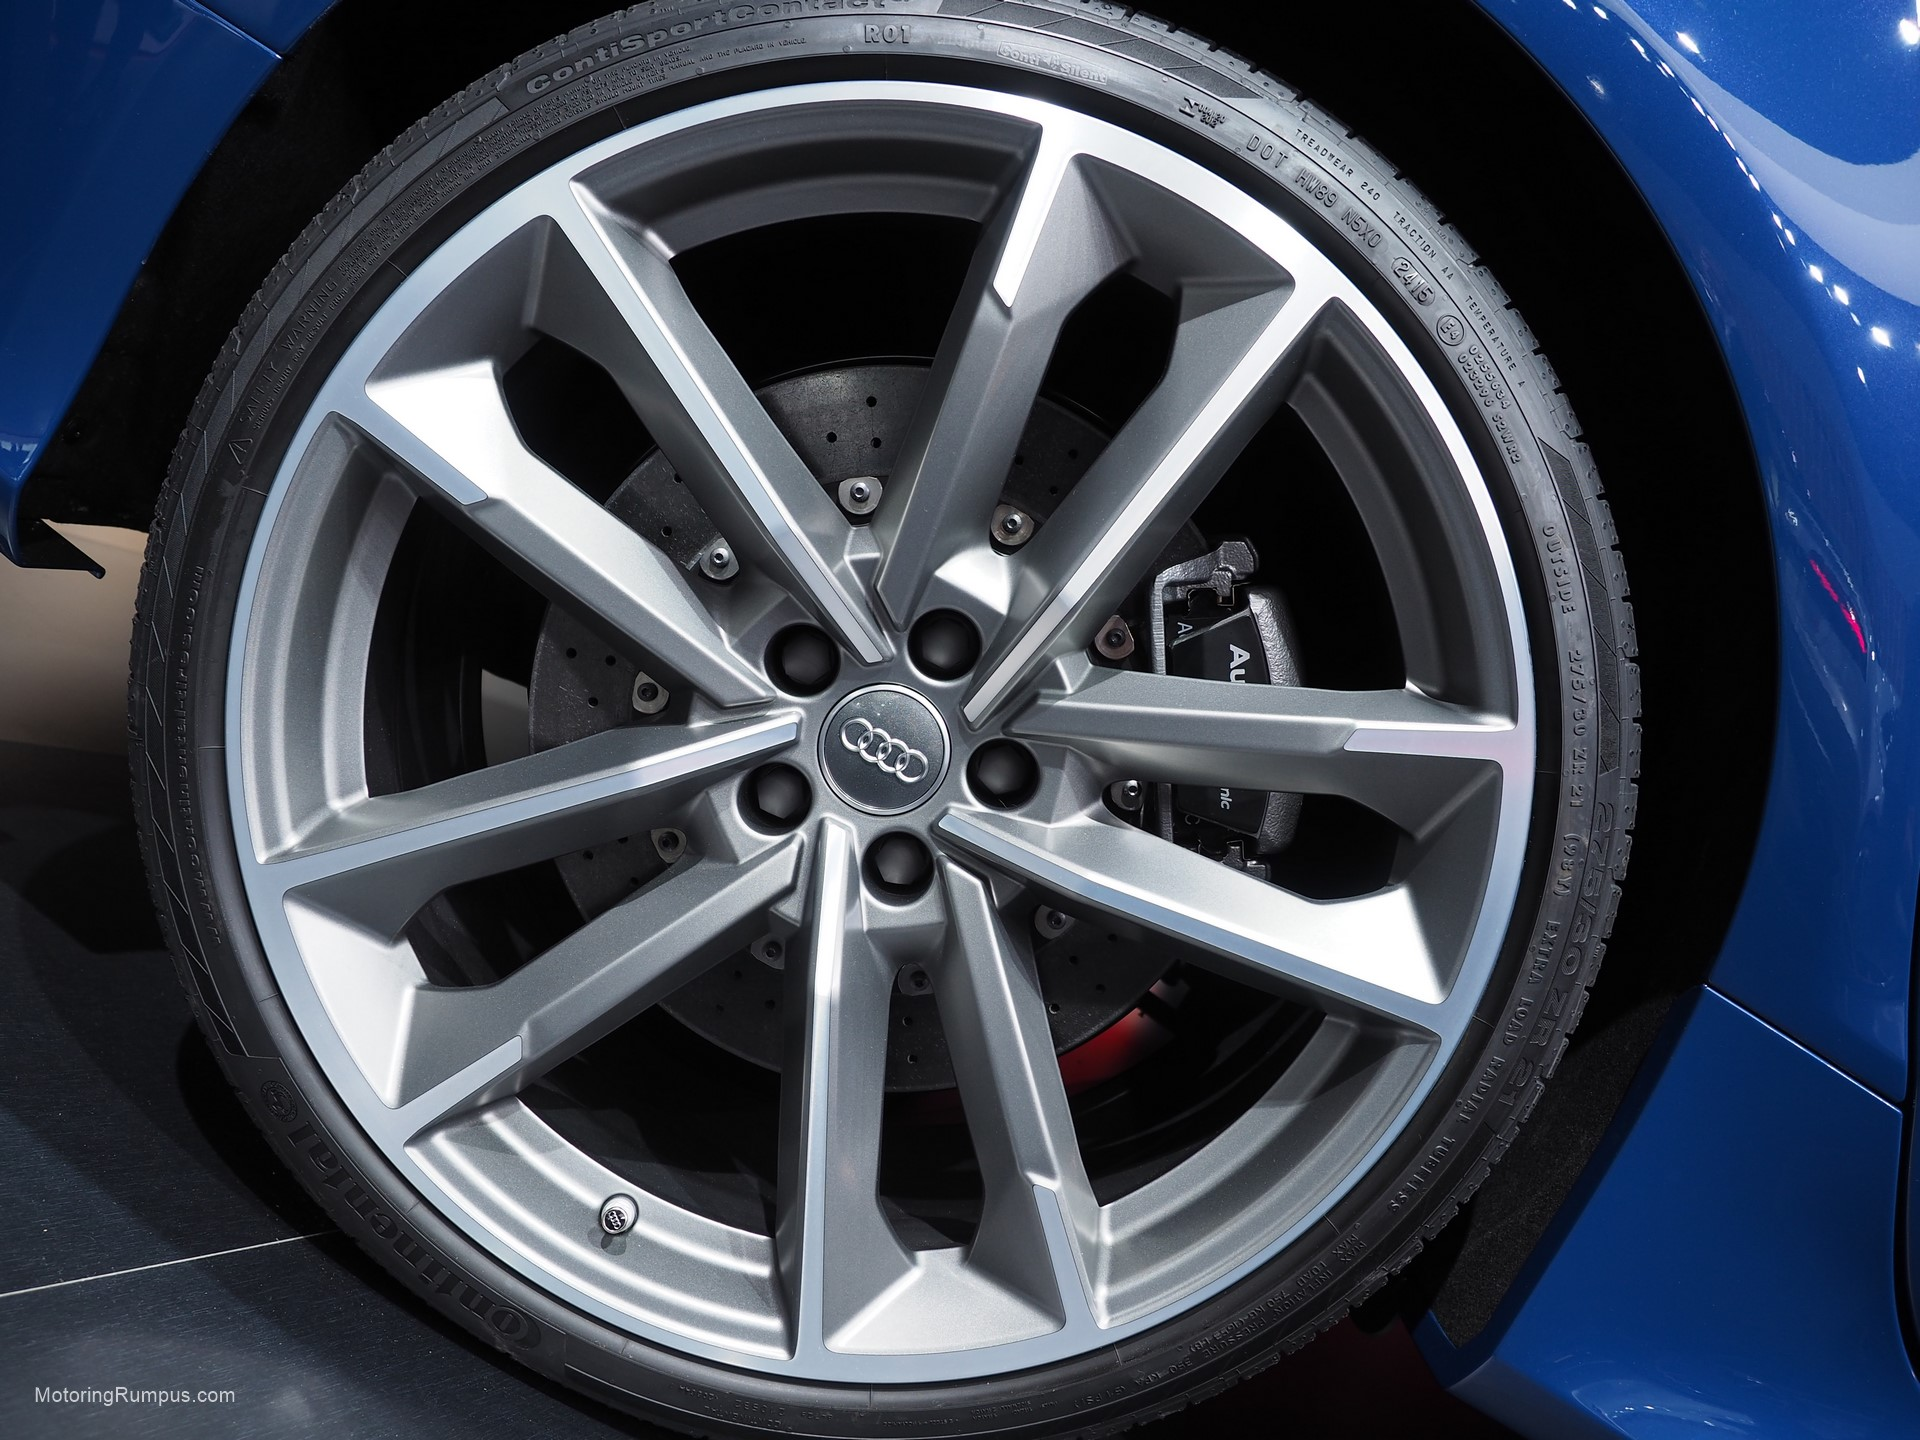 2016 Naias Audi Rs7 21 Inch Wheel Motoring Rumpus